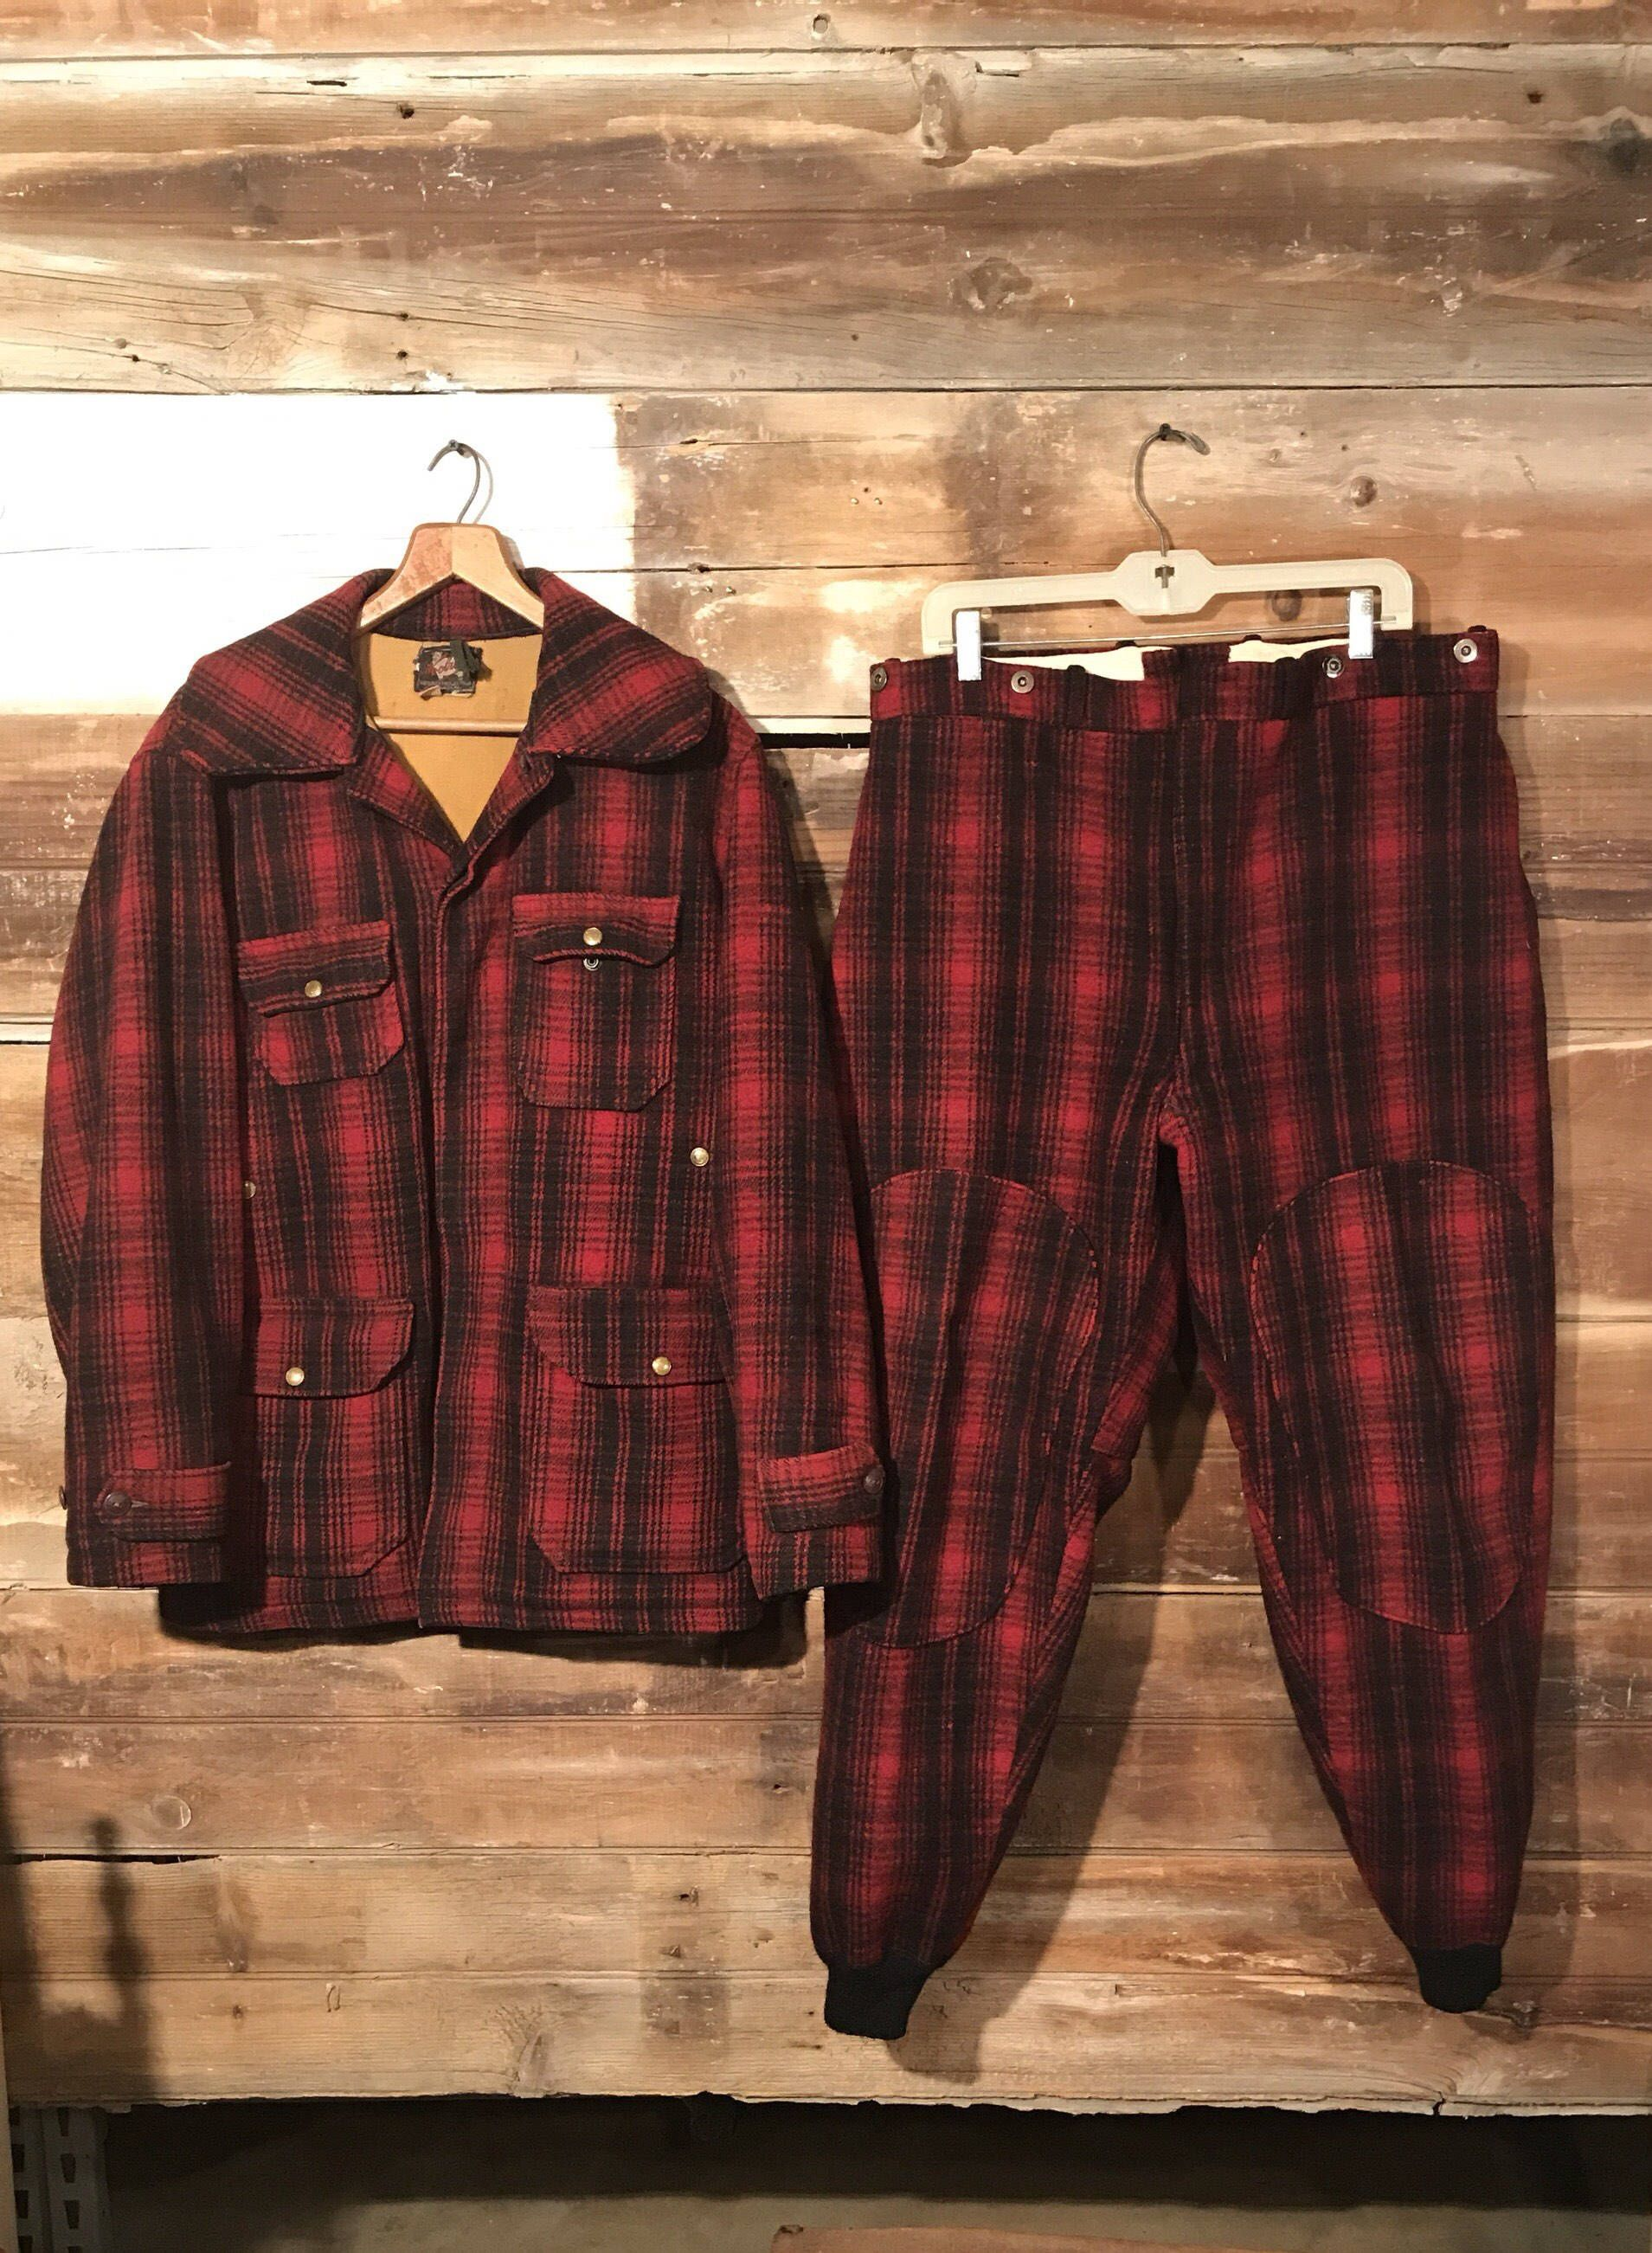 2951d11a44598 Excited to share the latest addition to my #etsy shop: Vintage Tartan Plaid Woolrich  Wool Hunting Coat and Pants * Red and Black Plaid * Vintage Hunting ...